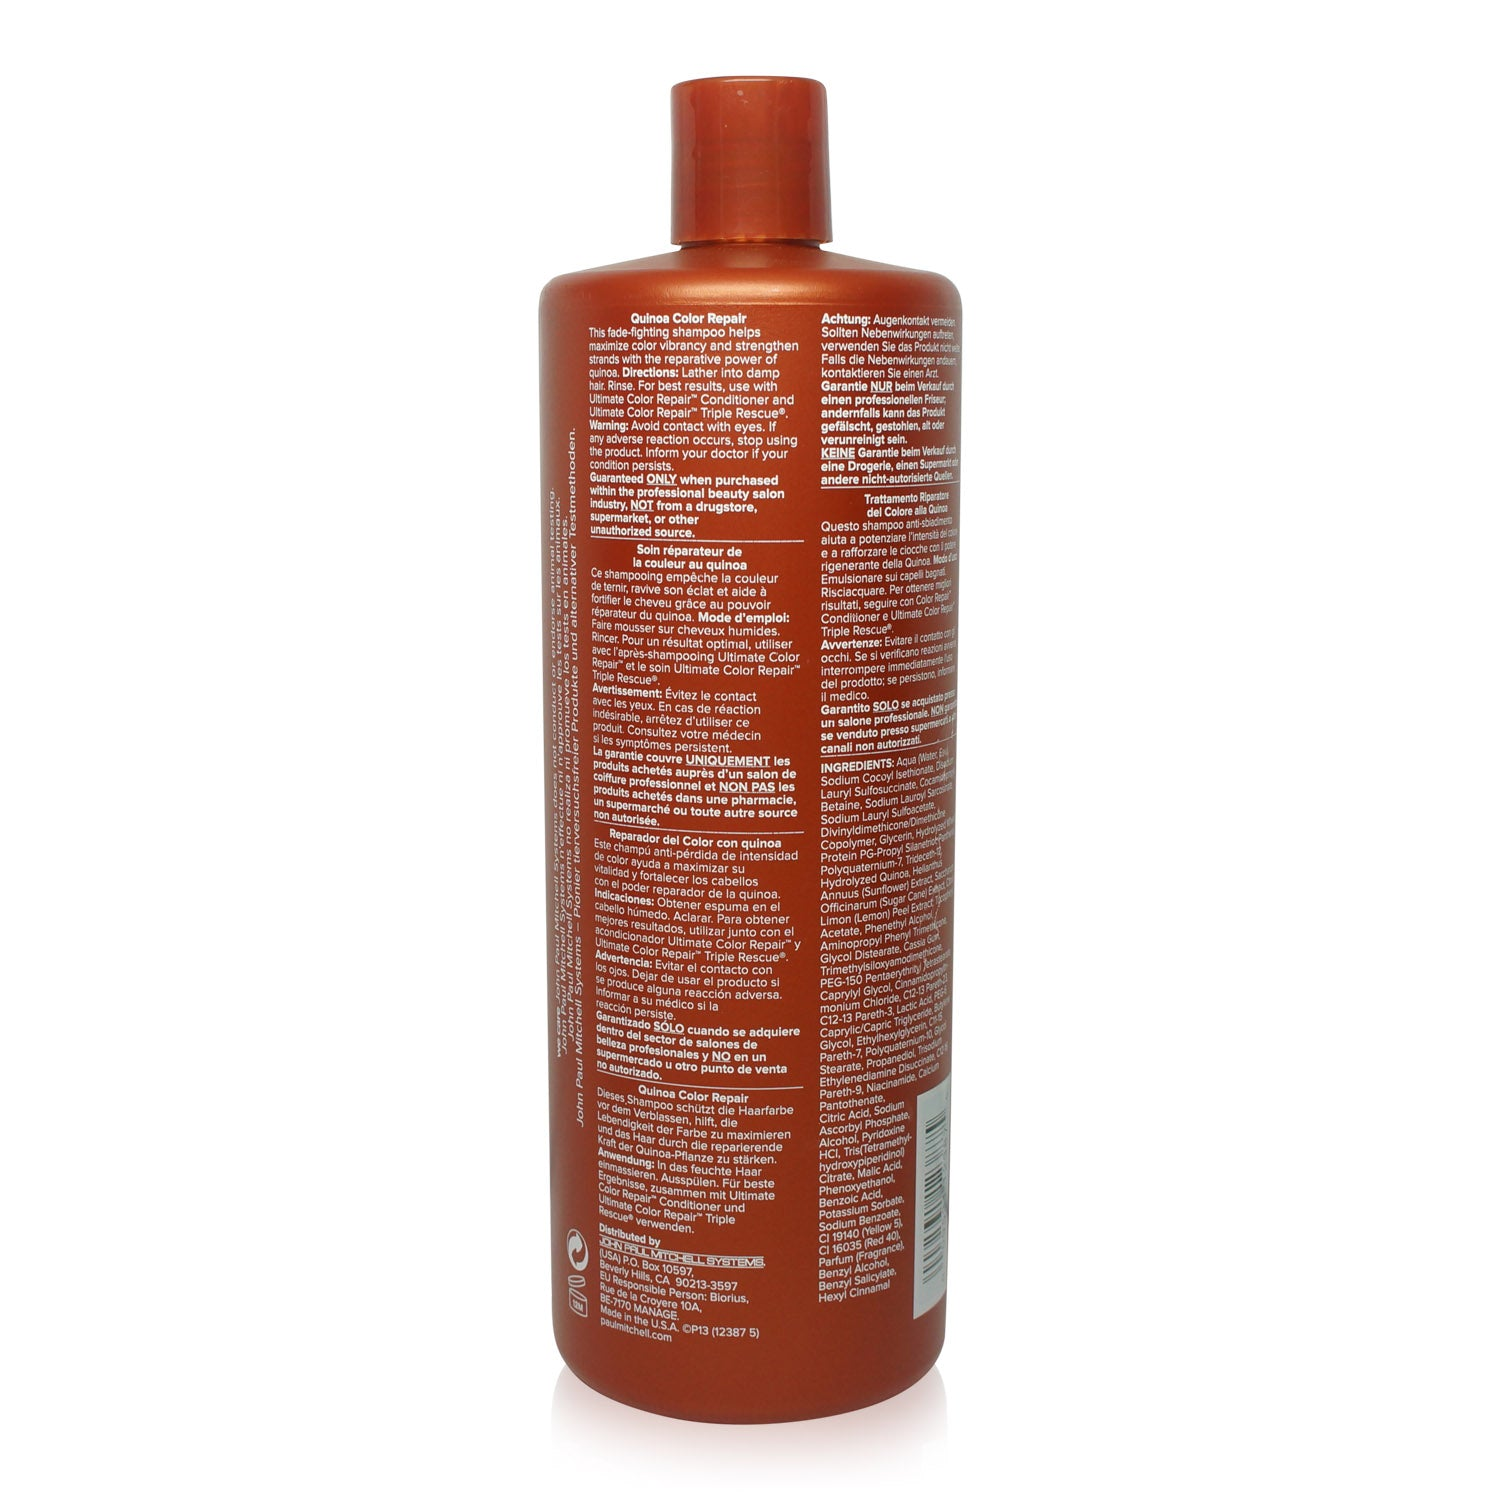 Paul Mitchell Ultimate Color Repair Shampoo 33.8 oz.